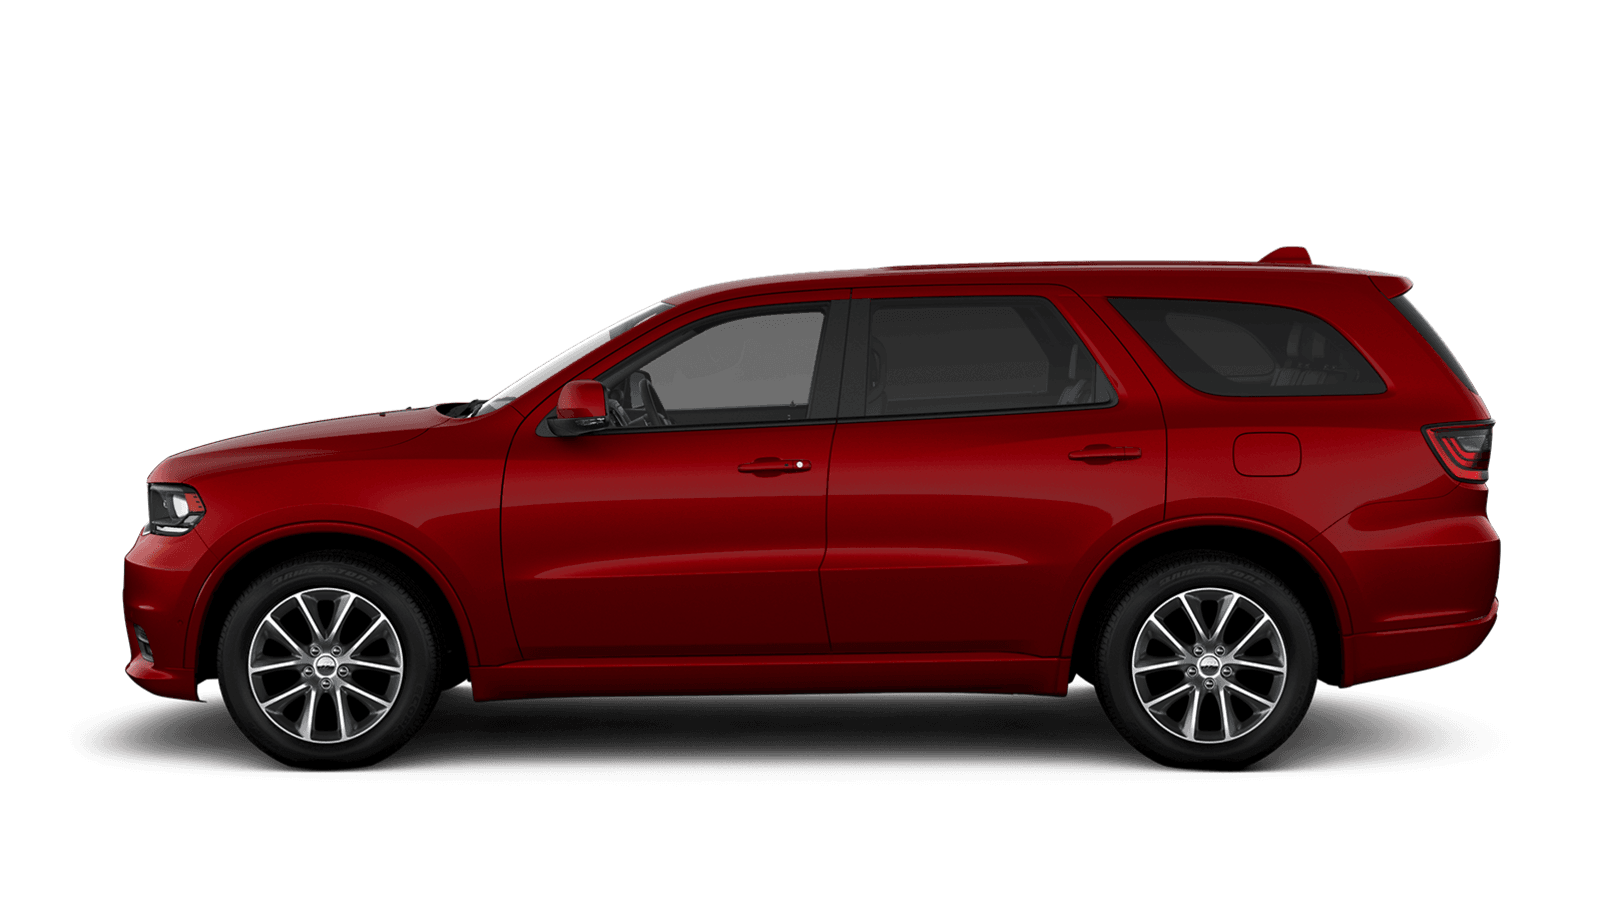 2019 Dodge Durango sideview with 20-inch platinum chrome aluminum wheels